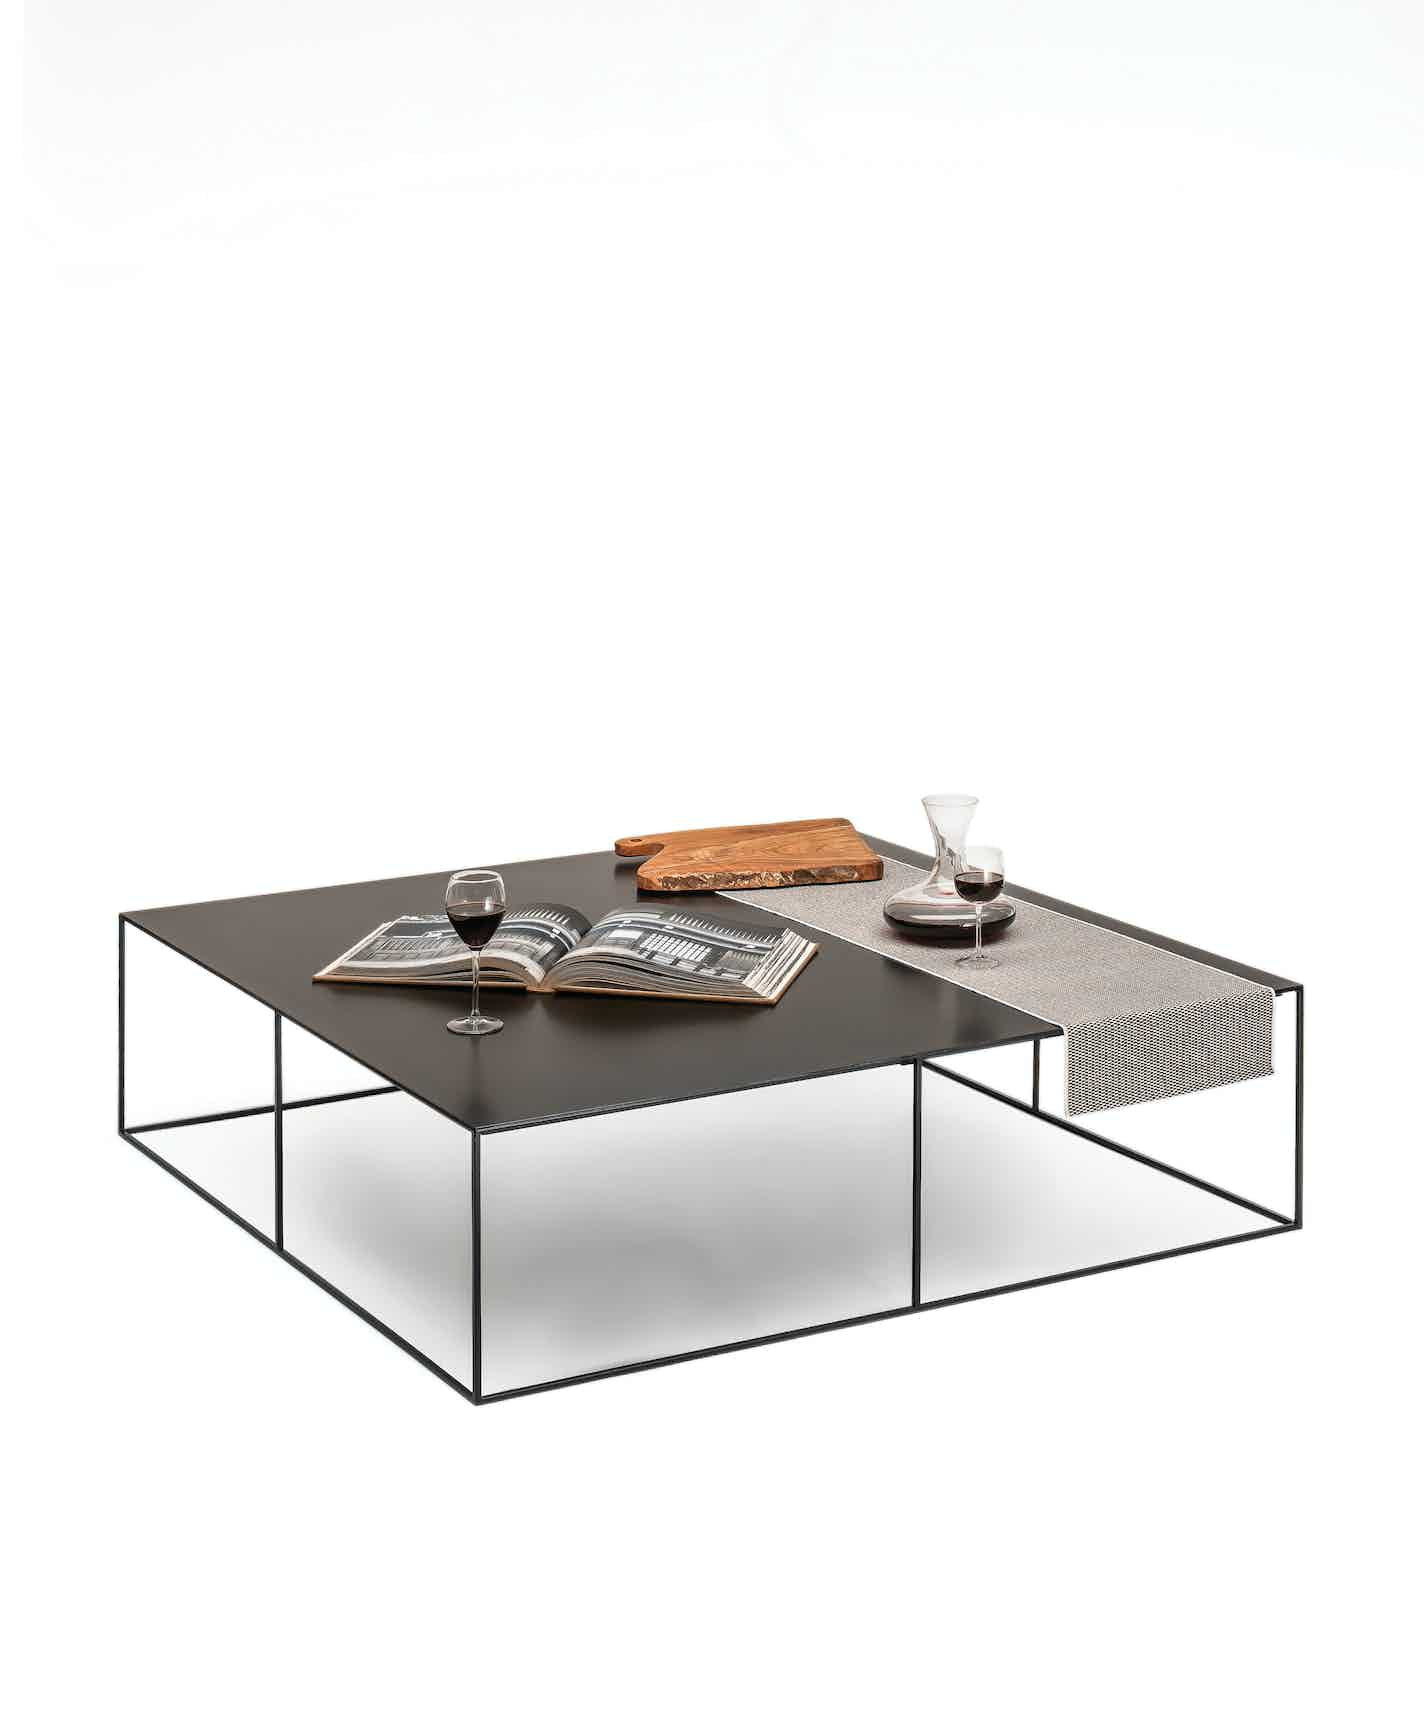 Slim Irony Low Table 124X124